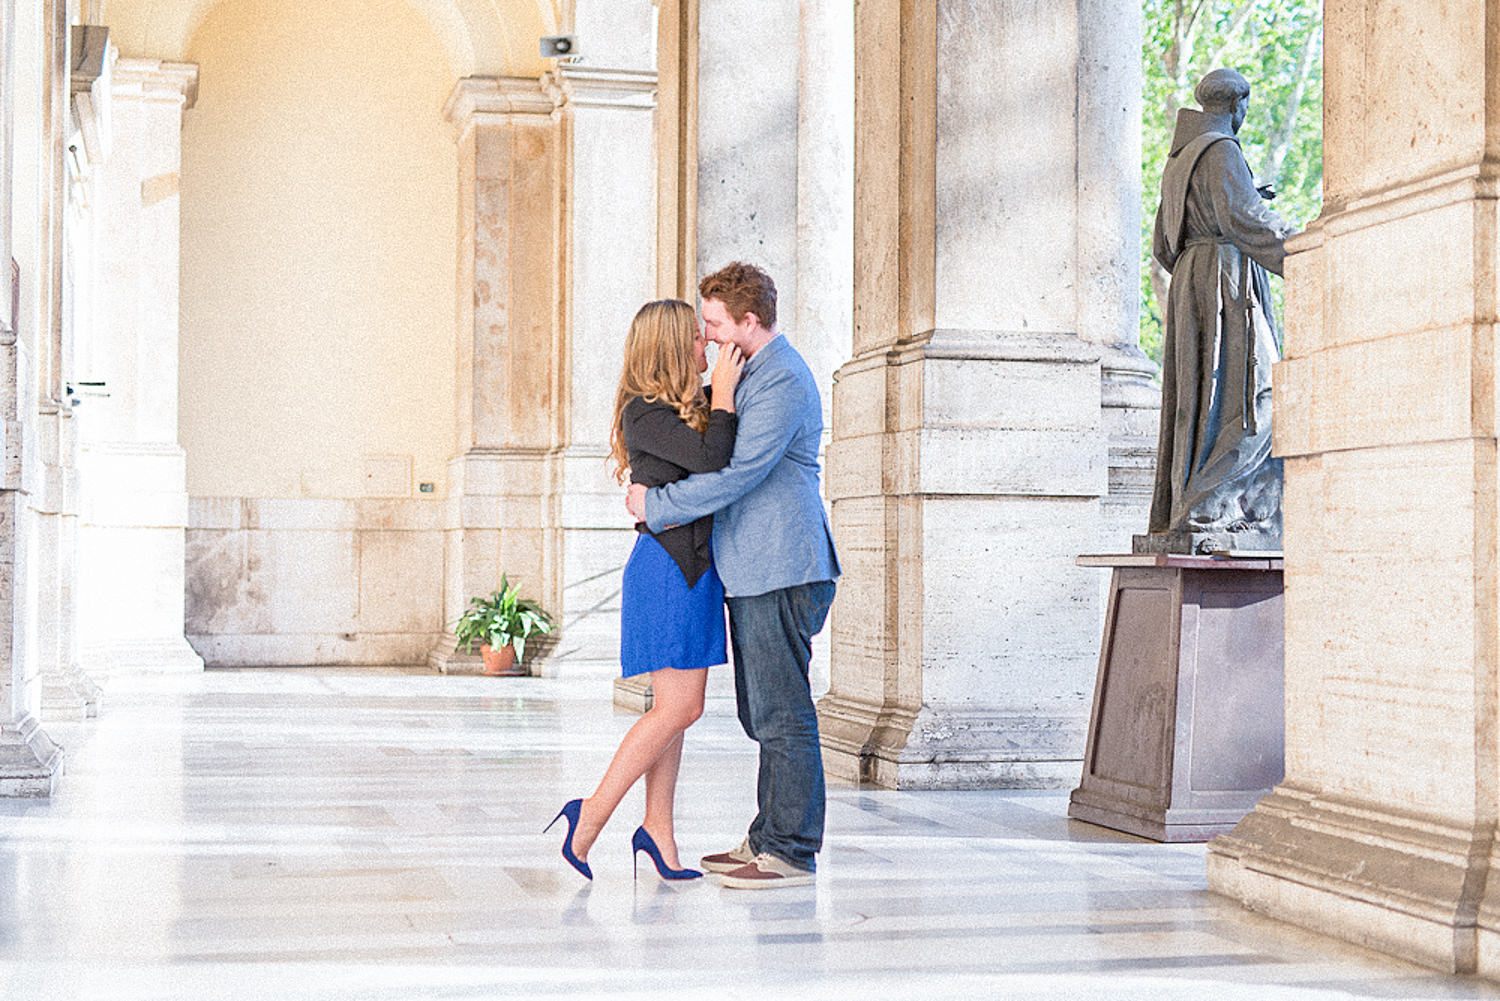 Engagement session in Rome